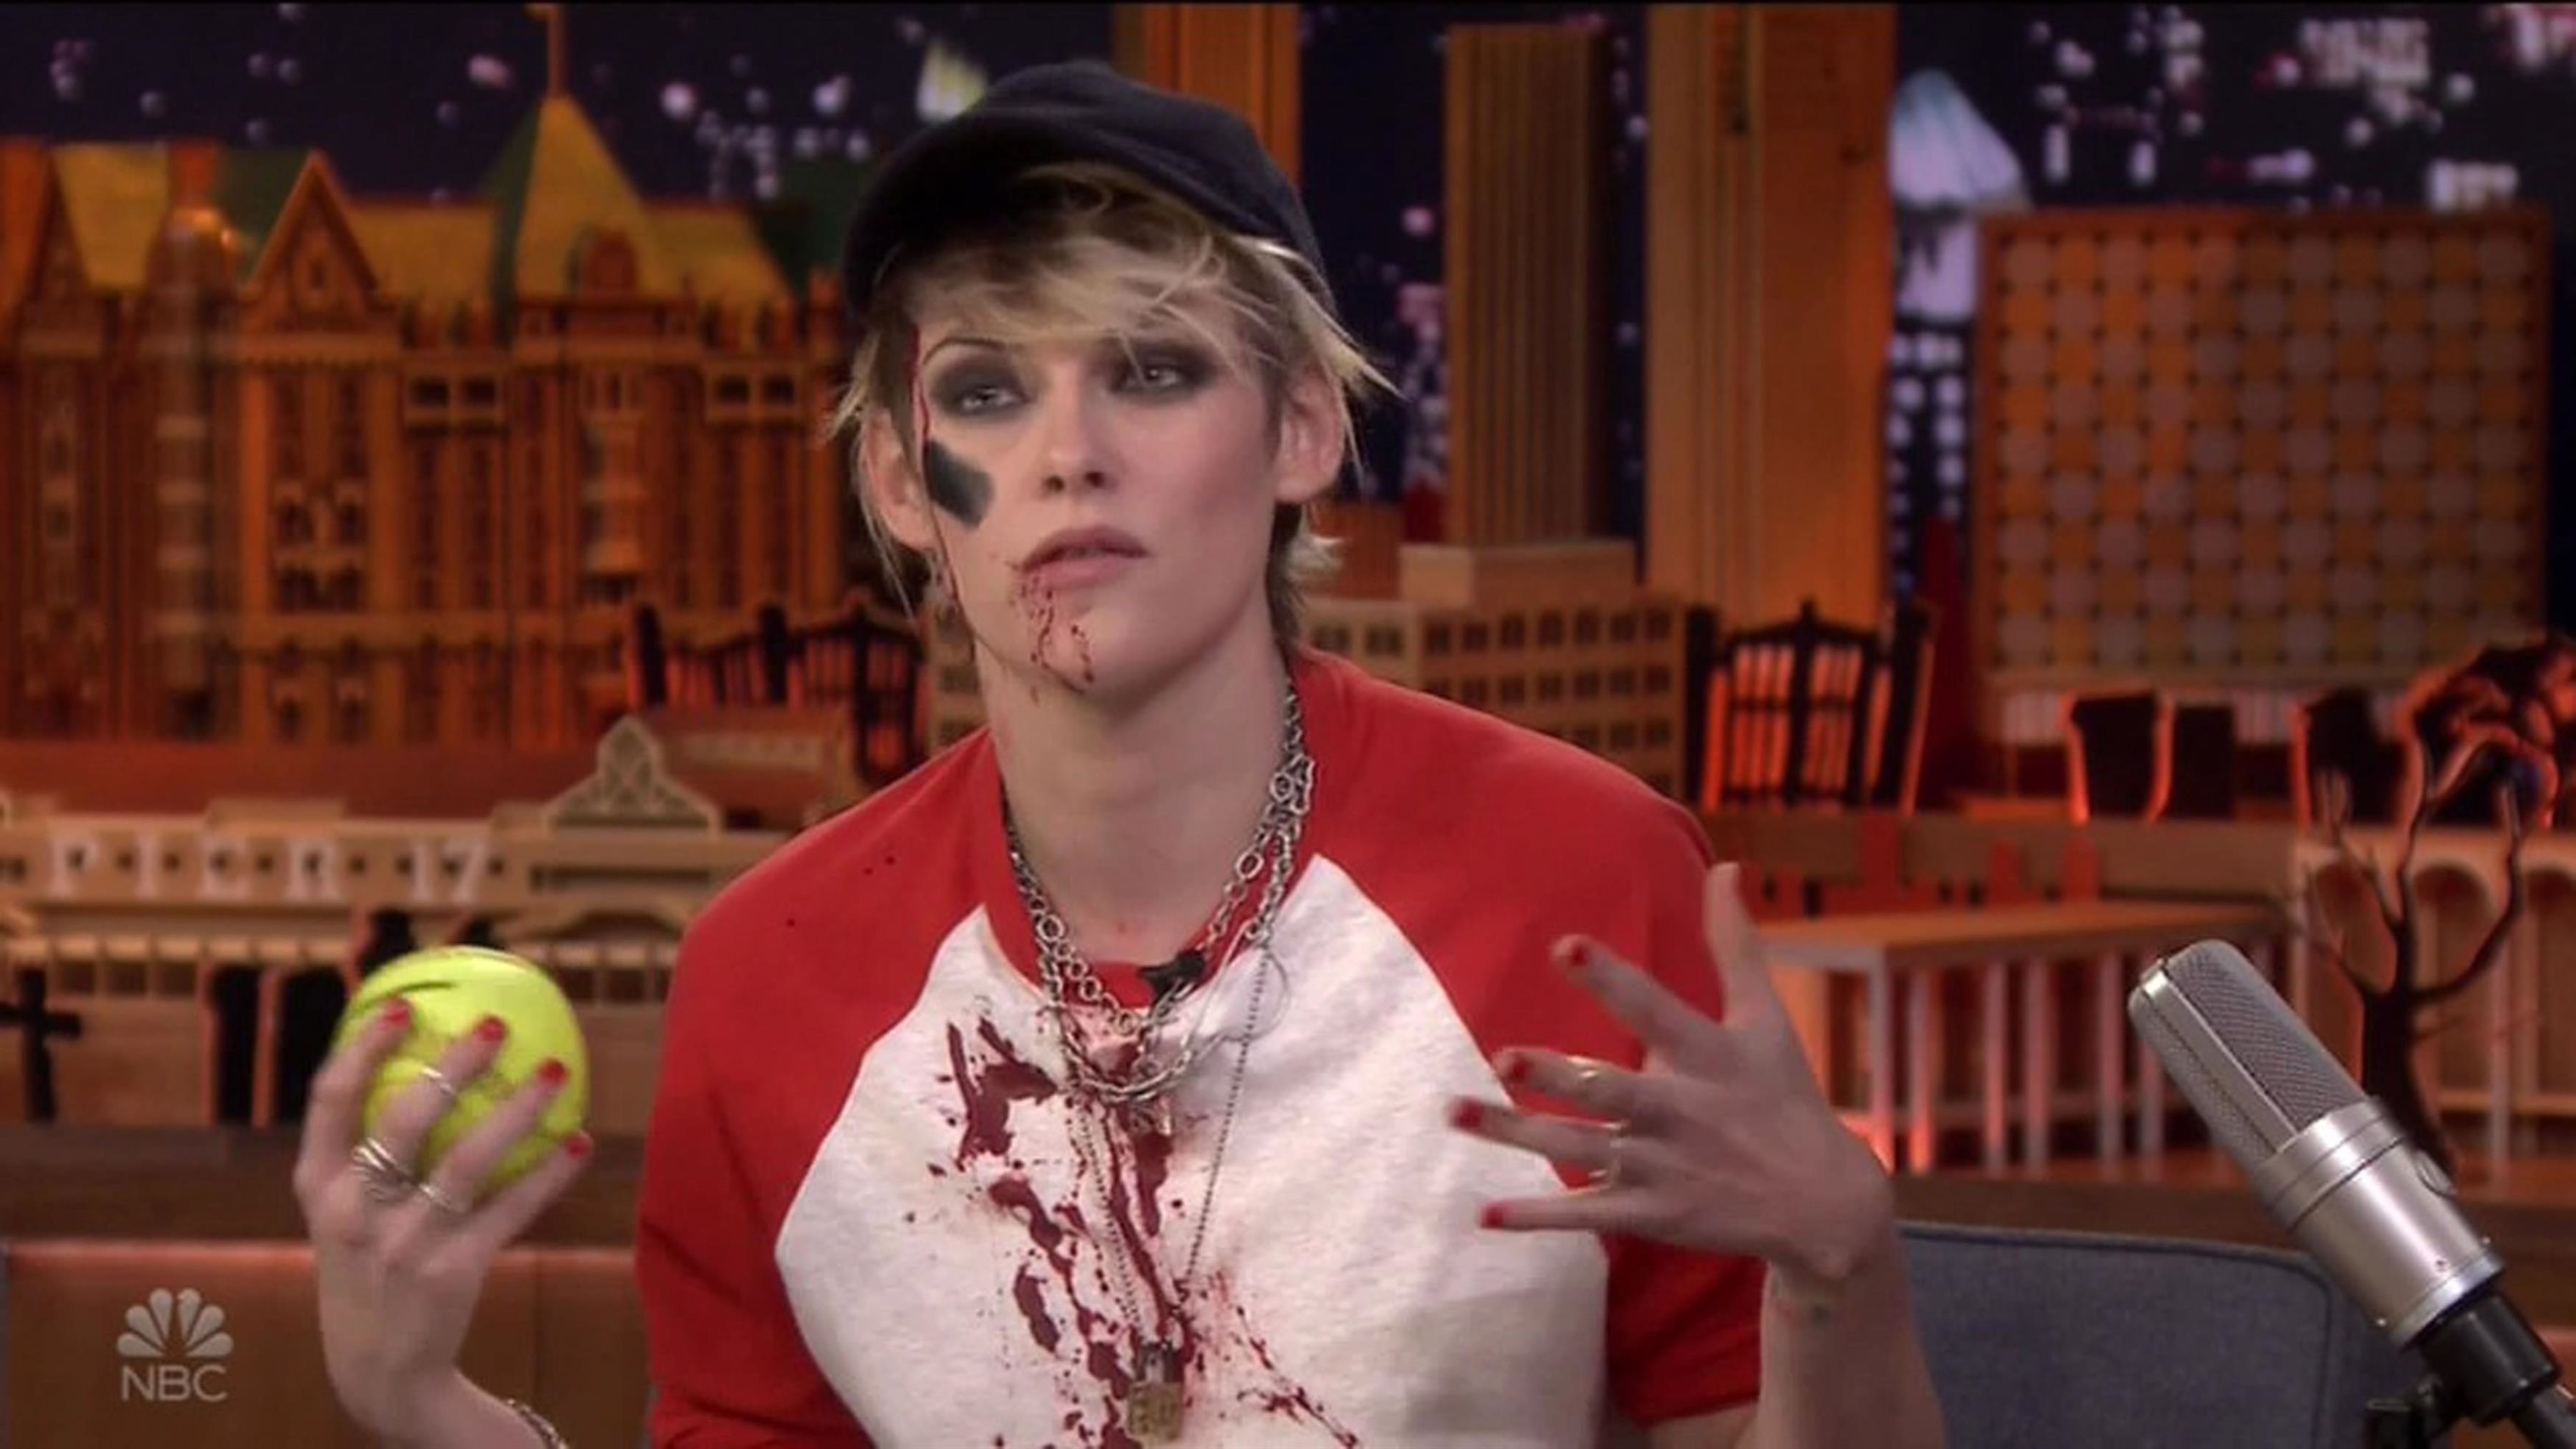 Los Angeles, CA  - Kristen Stewart dresses as a bloody baseball player but gives bizarre explanation of her costume as she appears on The Tonight Show. The Twilight star was on the show to promote her new Charlie's Angels movie - and came out on stage in a bloody baseball player costume complete with a bright yellow baseball. Host Jimmy Fallon told her: